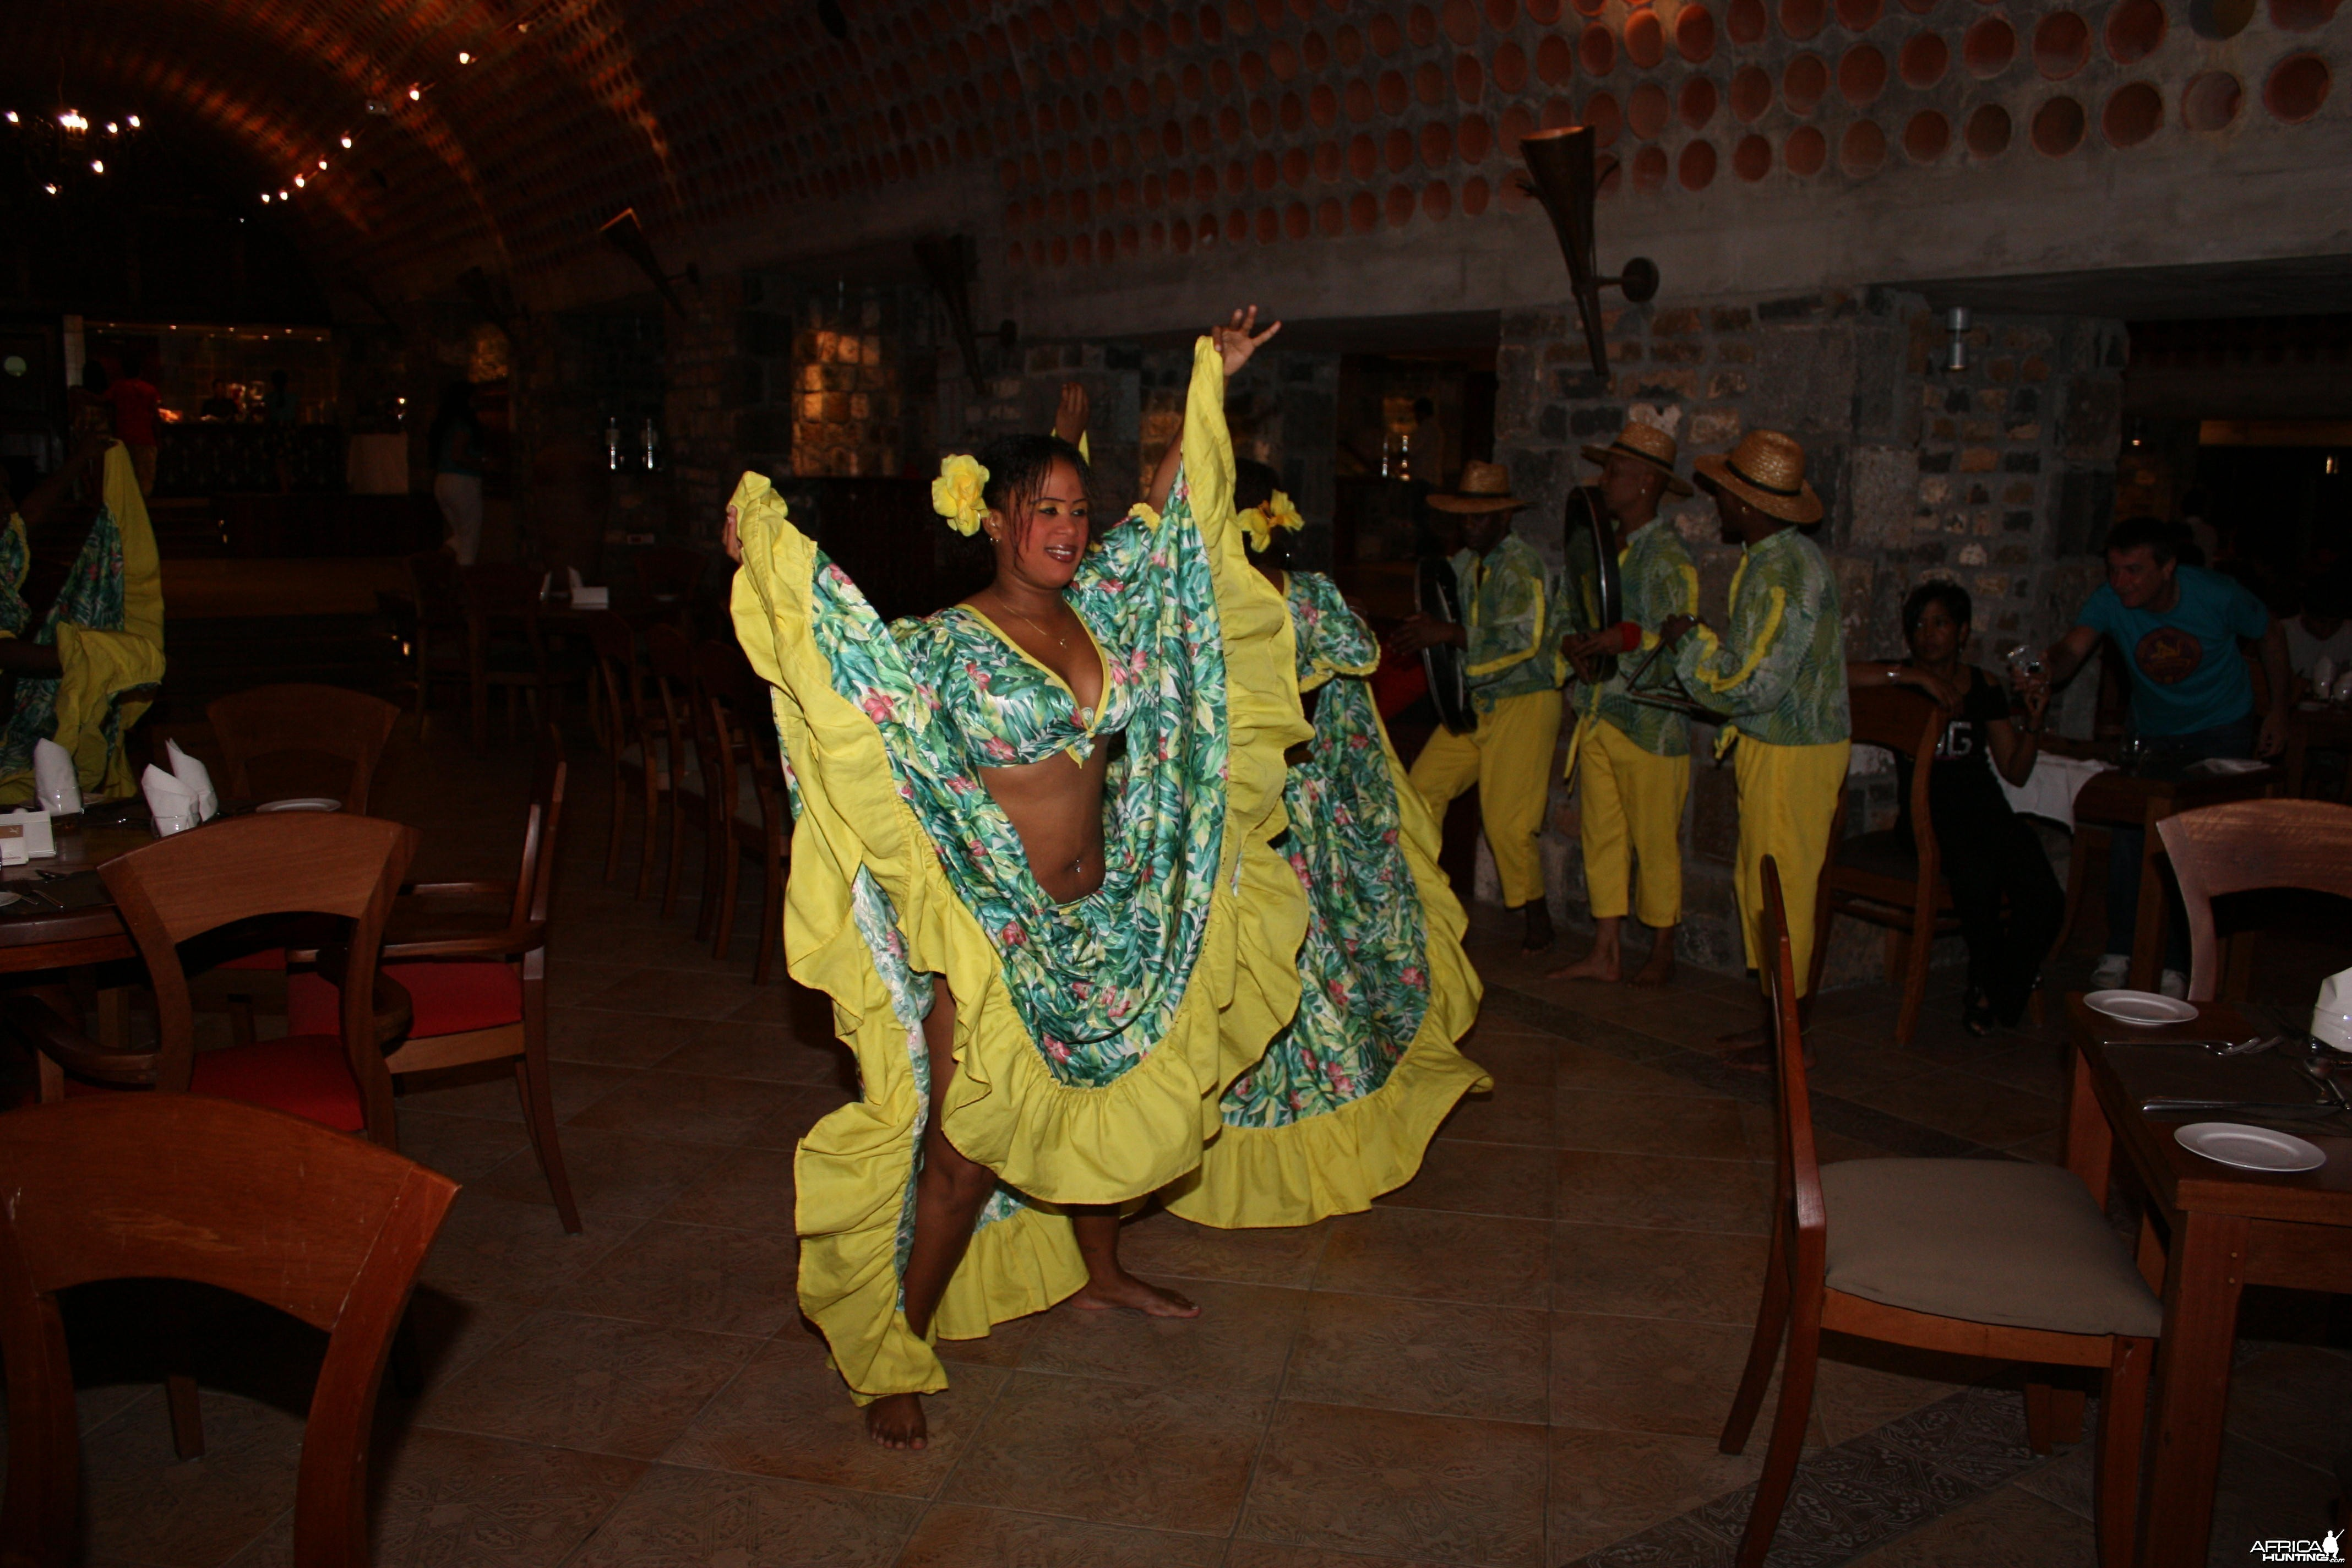 Sega Dancer at dinner in Mauritius